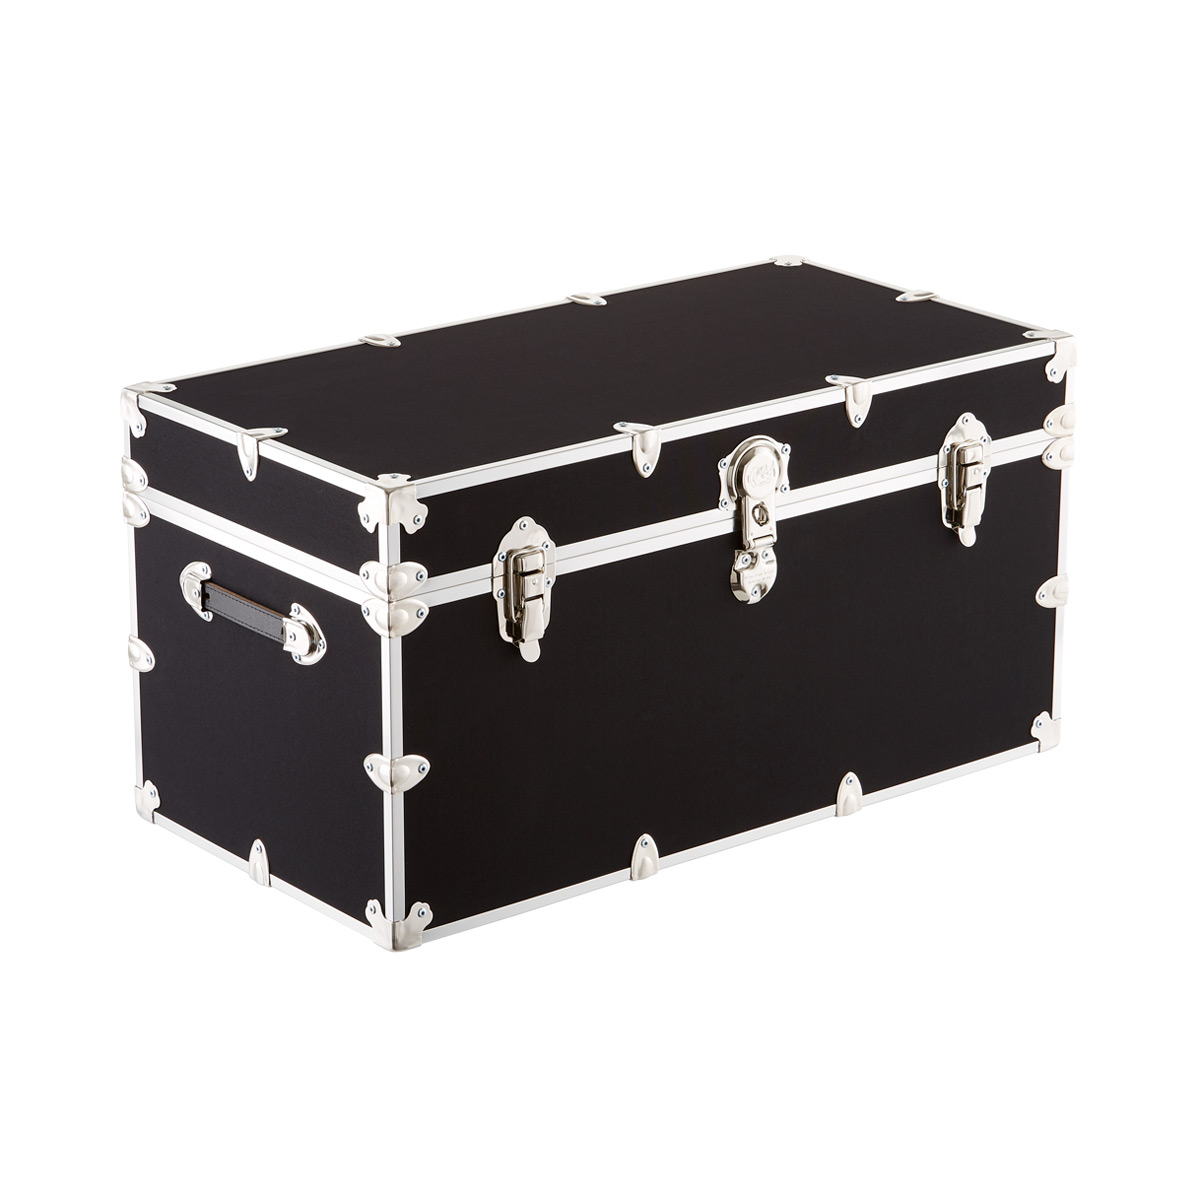 Marvelous Rhino Deluxe Locking Rolling Storage Trunk ...